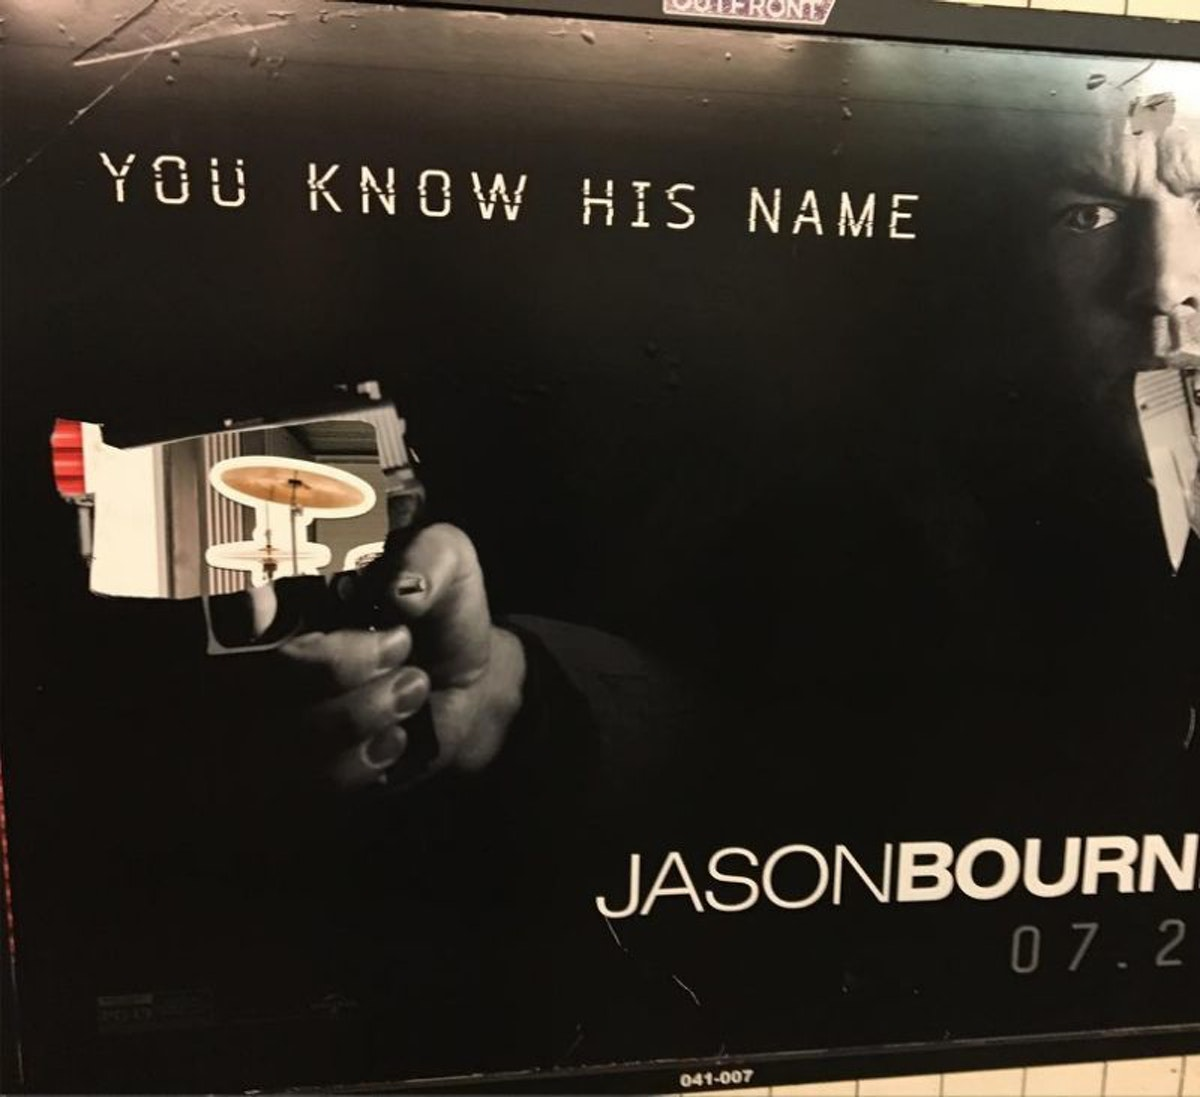 A defaced Bourne poster on the NYC subway